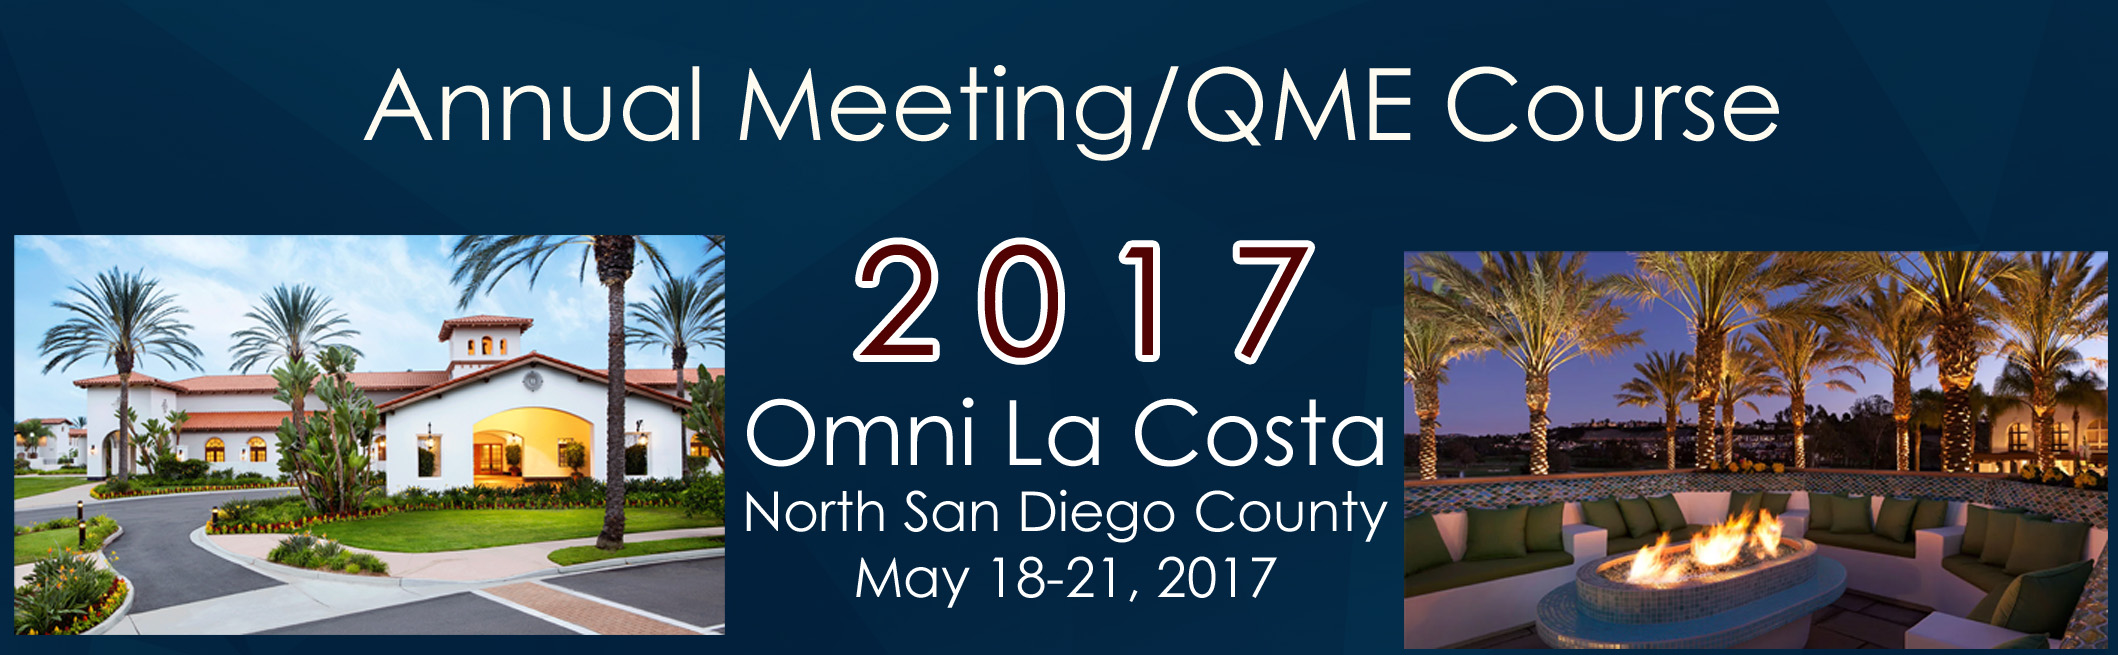 Annual Meeting/QME Course